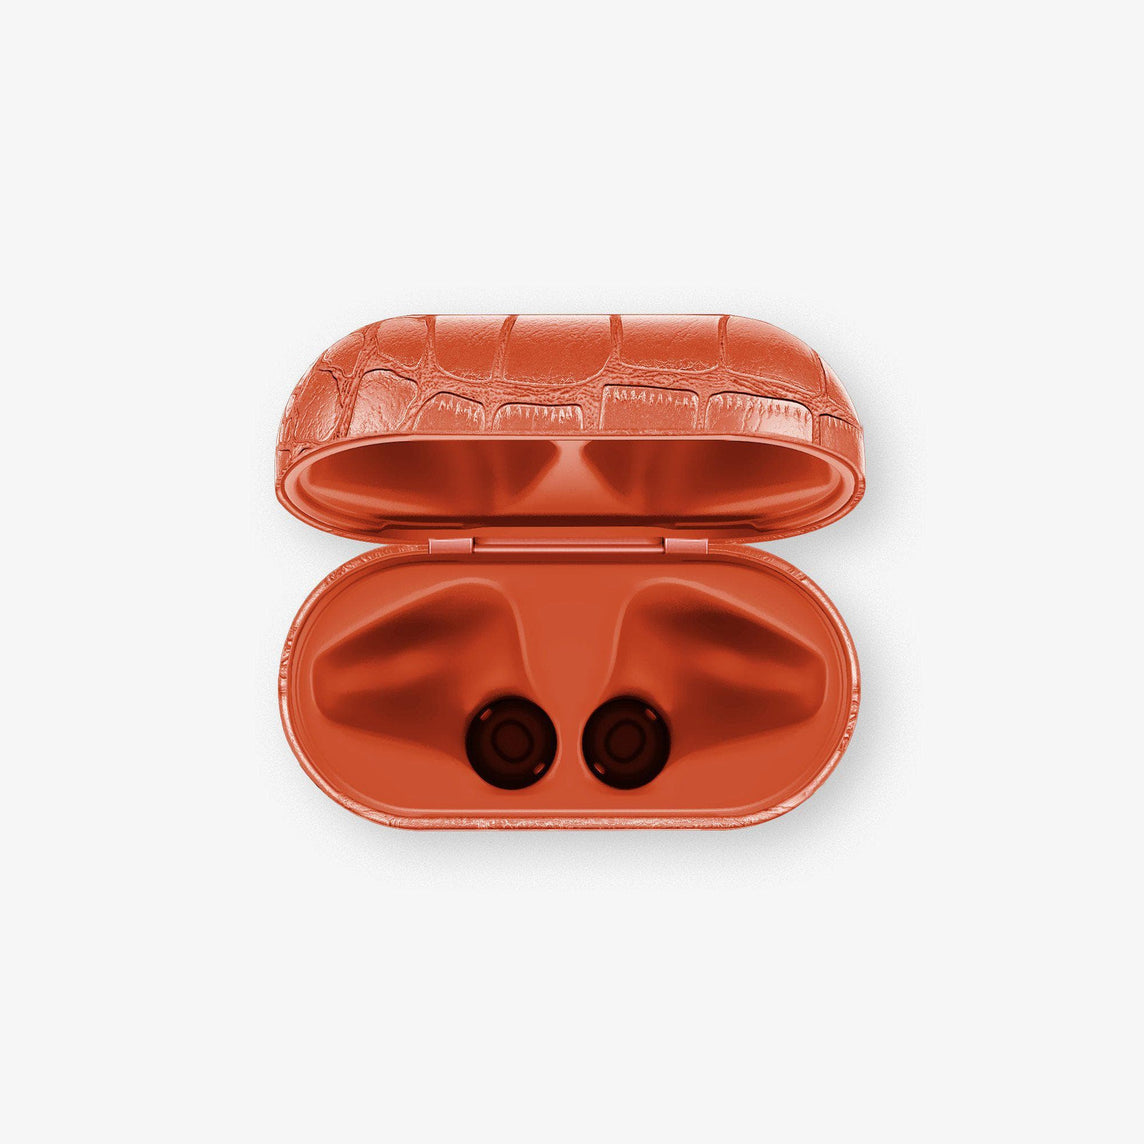 Alligator Wireless Charging Case for AirPod | Orange Sunset - Stainless Steel